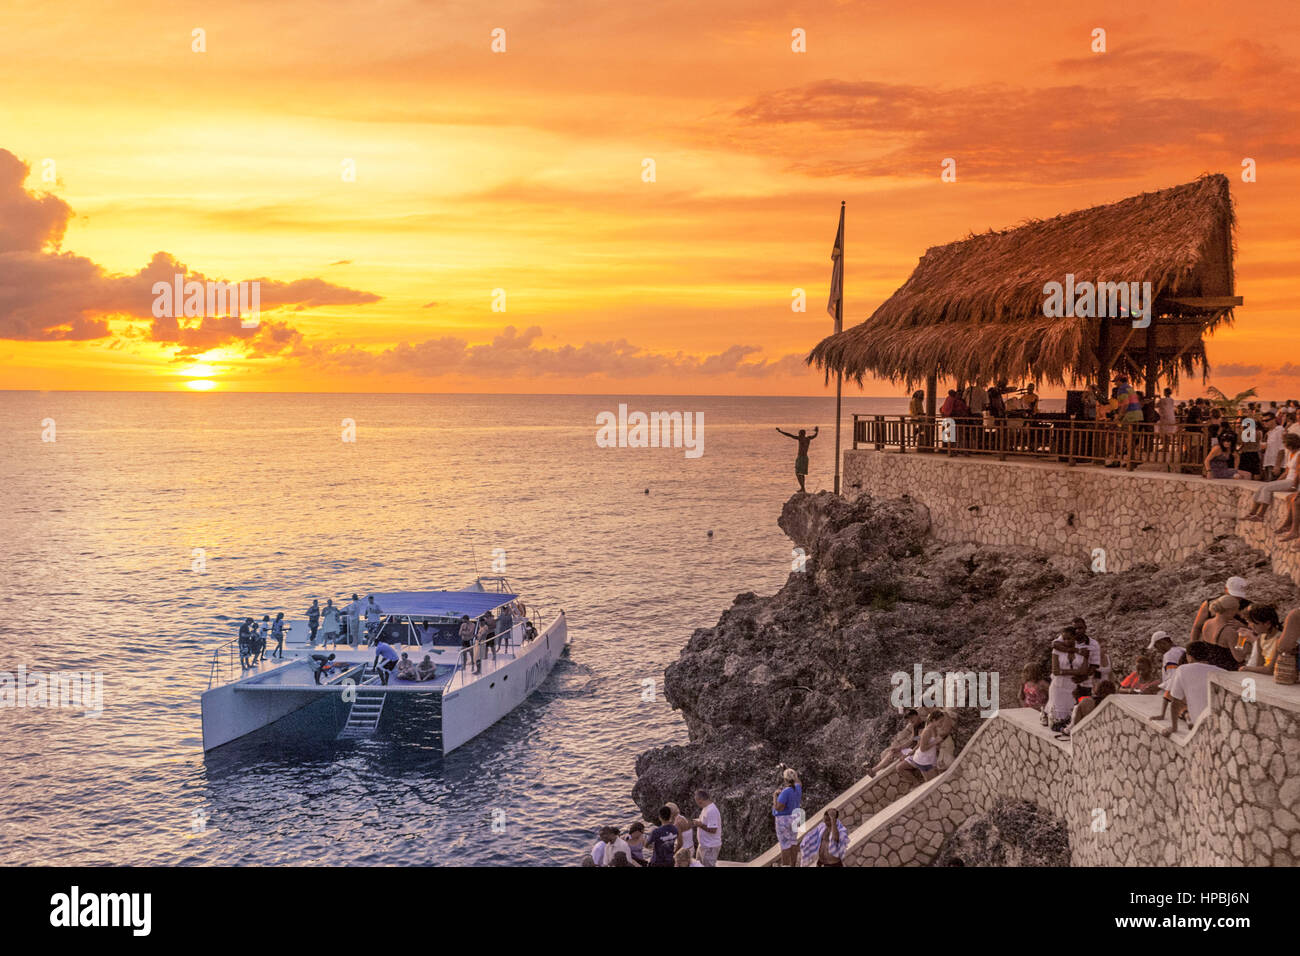 Ricks Cafe open air bar , Rick´s viewpoint at sunset, Catamaran, nightlife, Negril Jamaica, - Stock Image